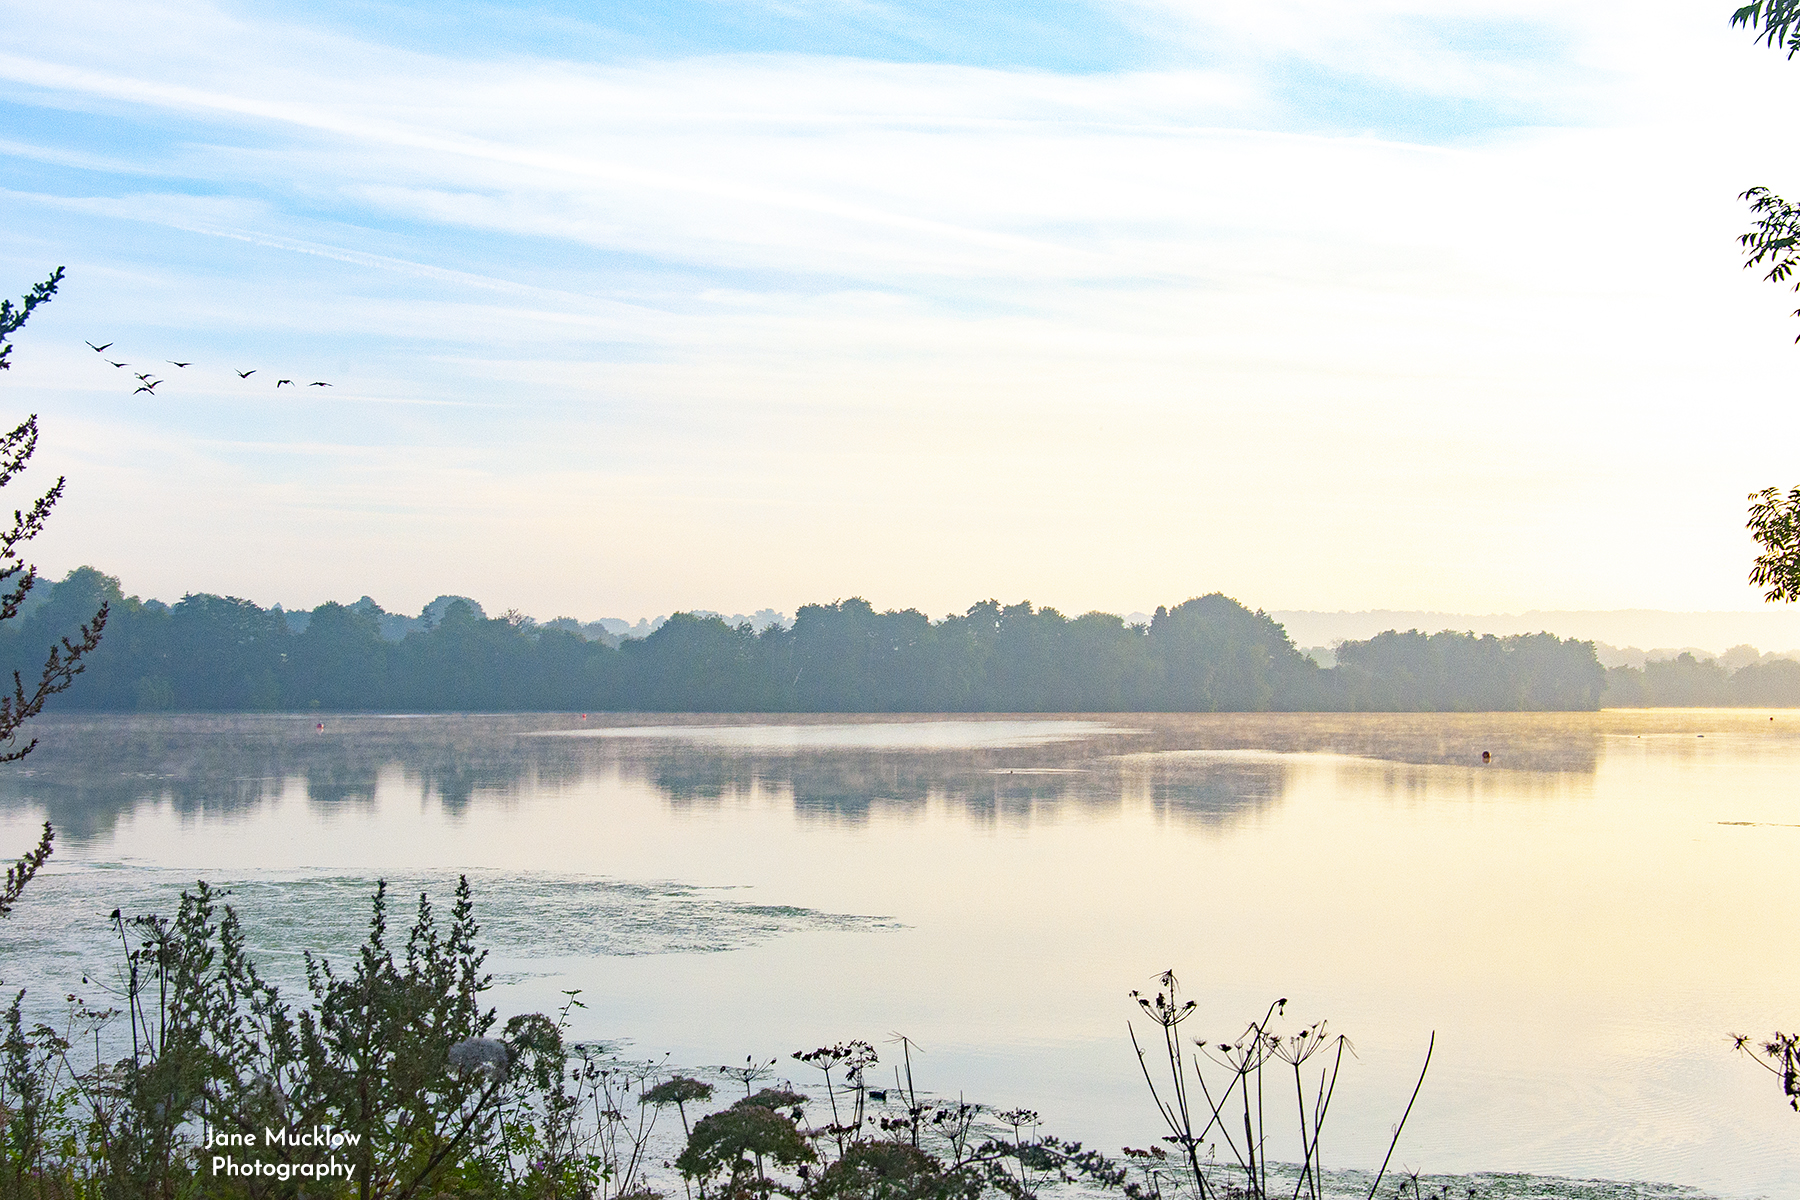 Photo of the sunrise at Chipstead Lake, Sevenoaks, by Jane Mucklow